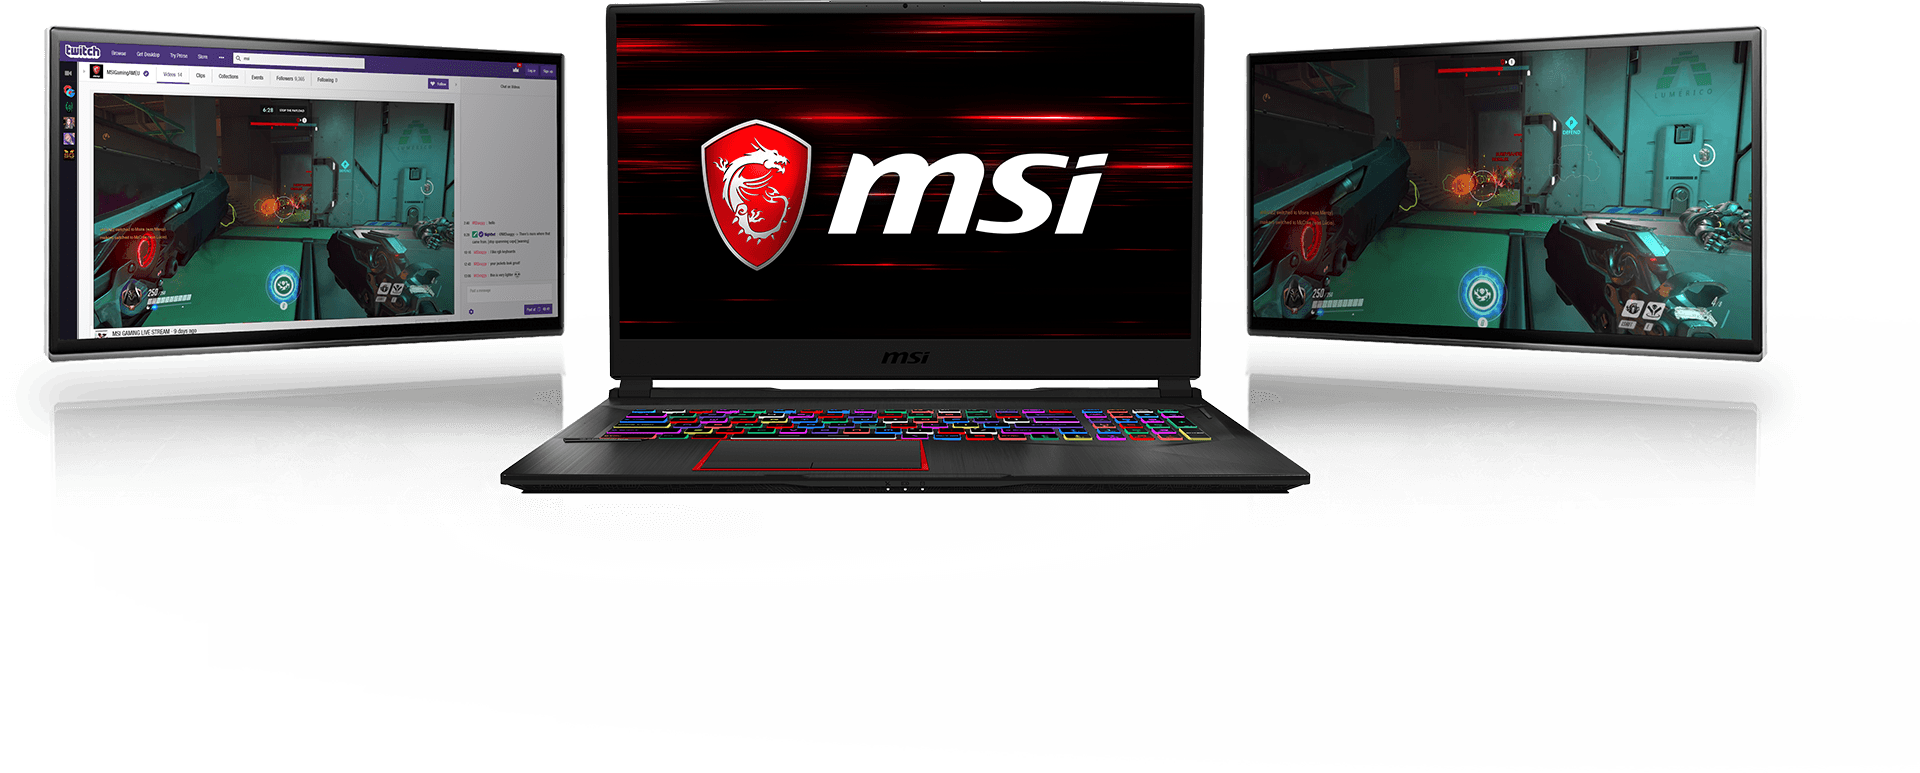 msi ips featuer